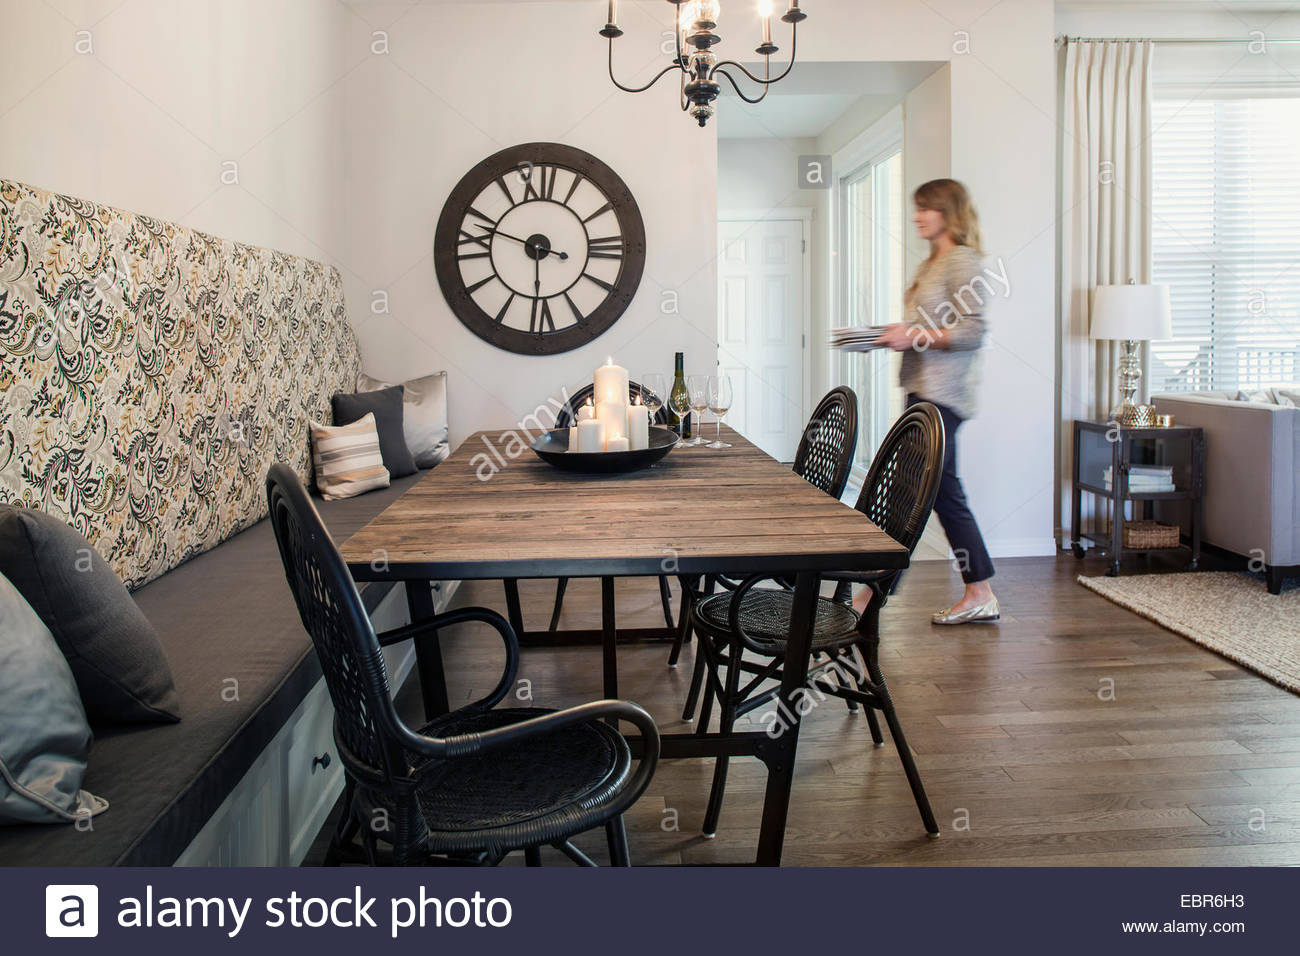 Woman walking toward table in dining room - Stock Image